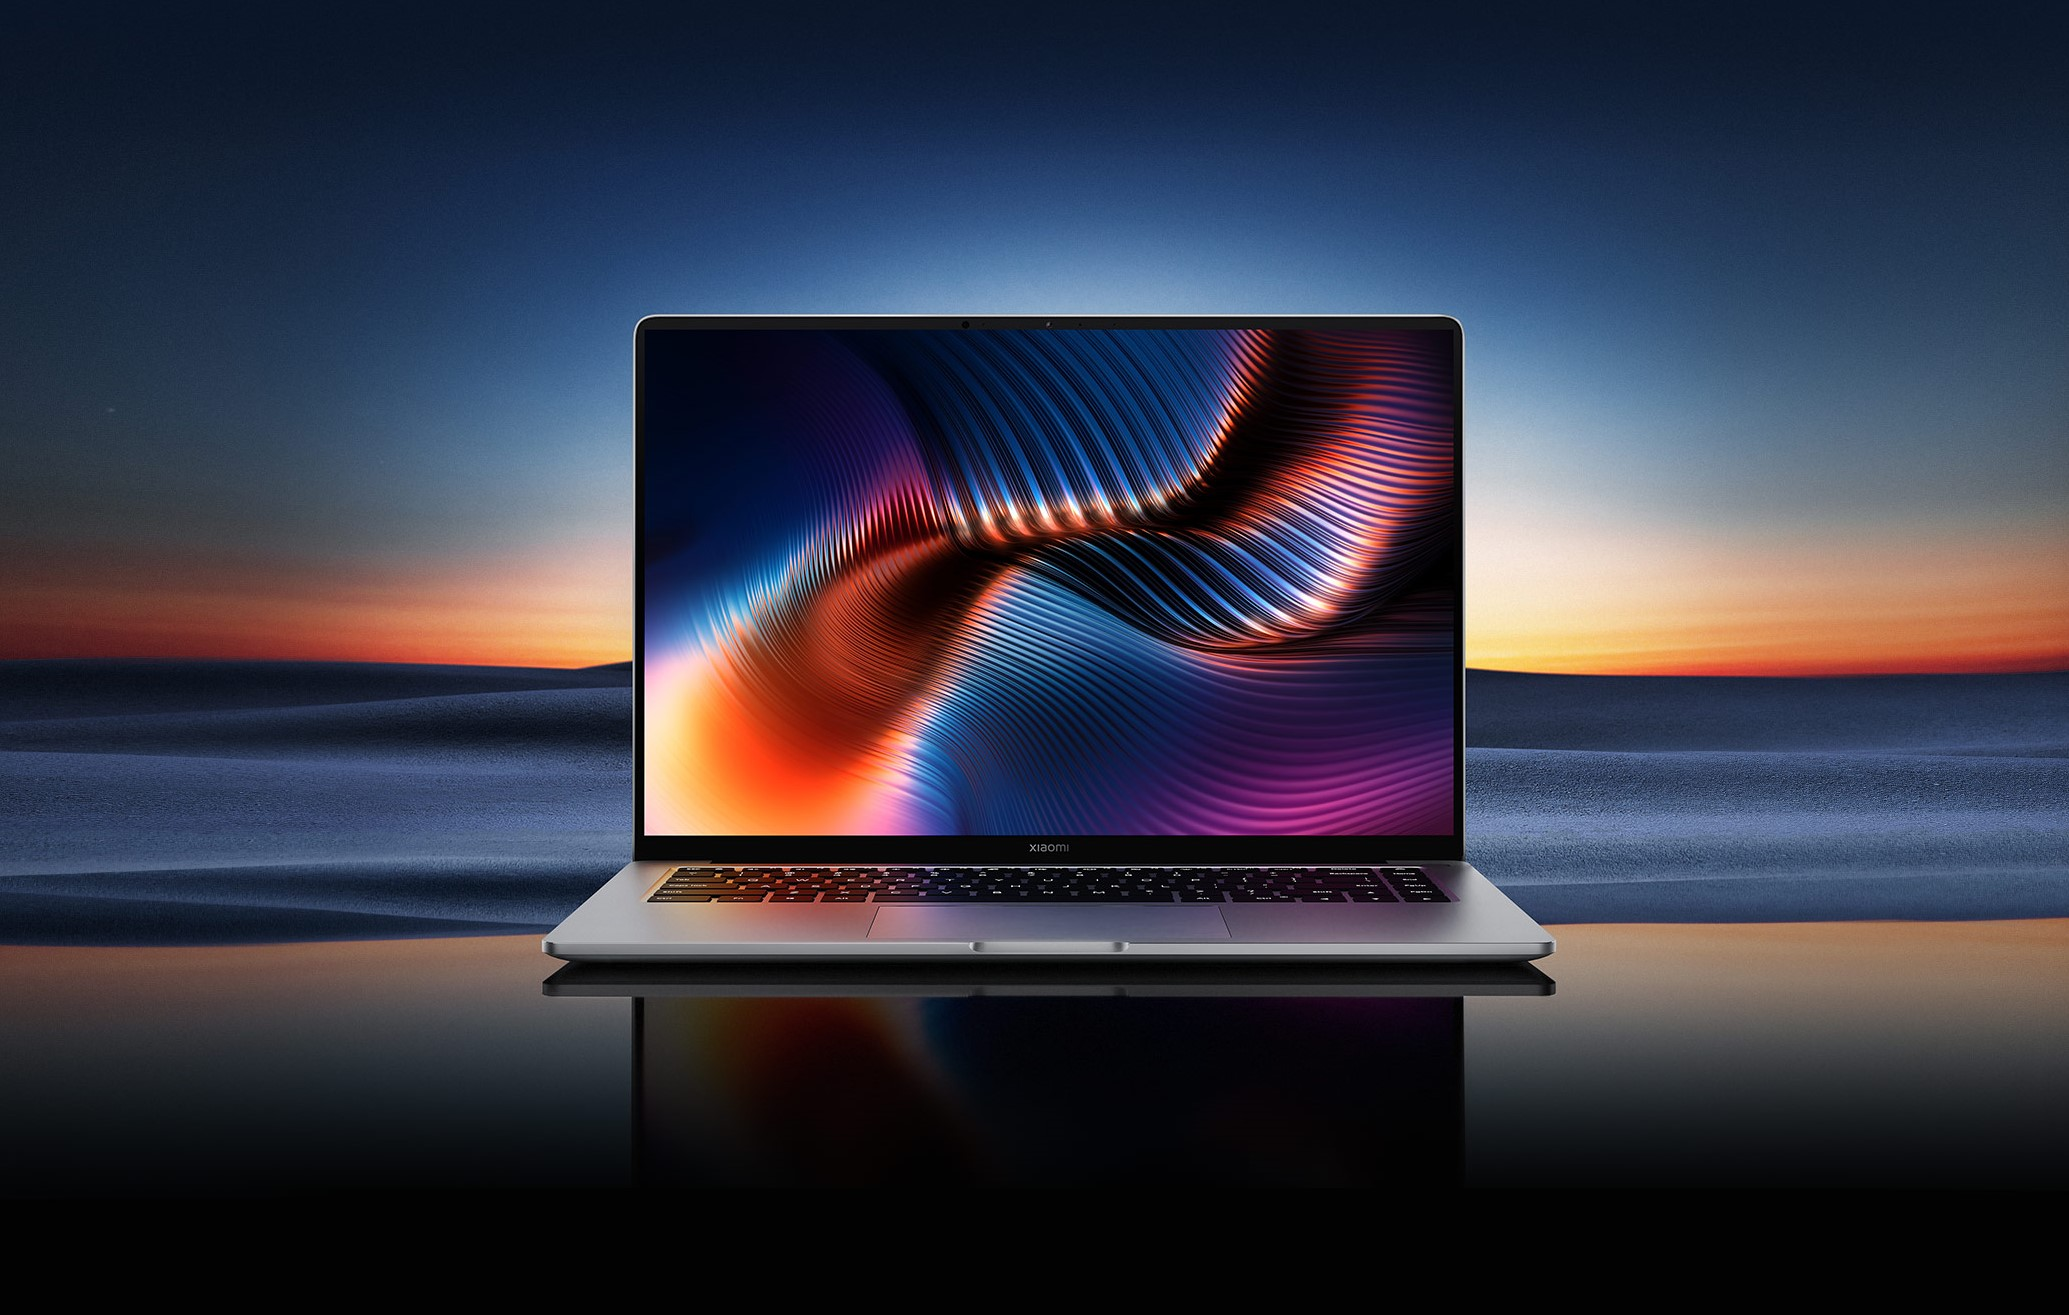 Официально: Xiaomi выпустит Mi Notebook Pro X с видеокартой Nvidia GeForce RTX 3050 Ti